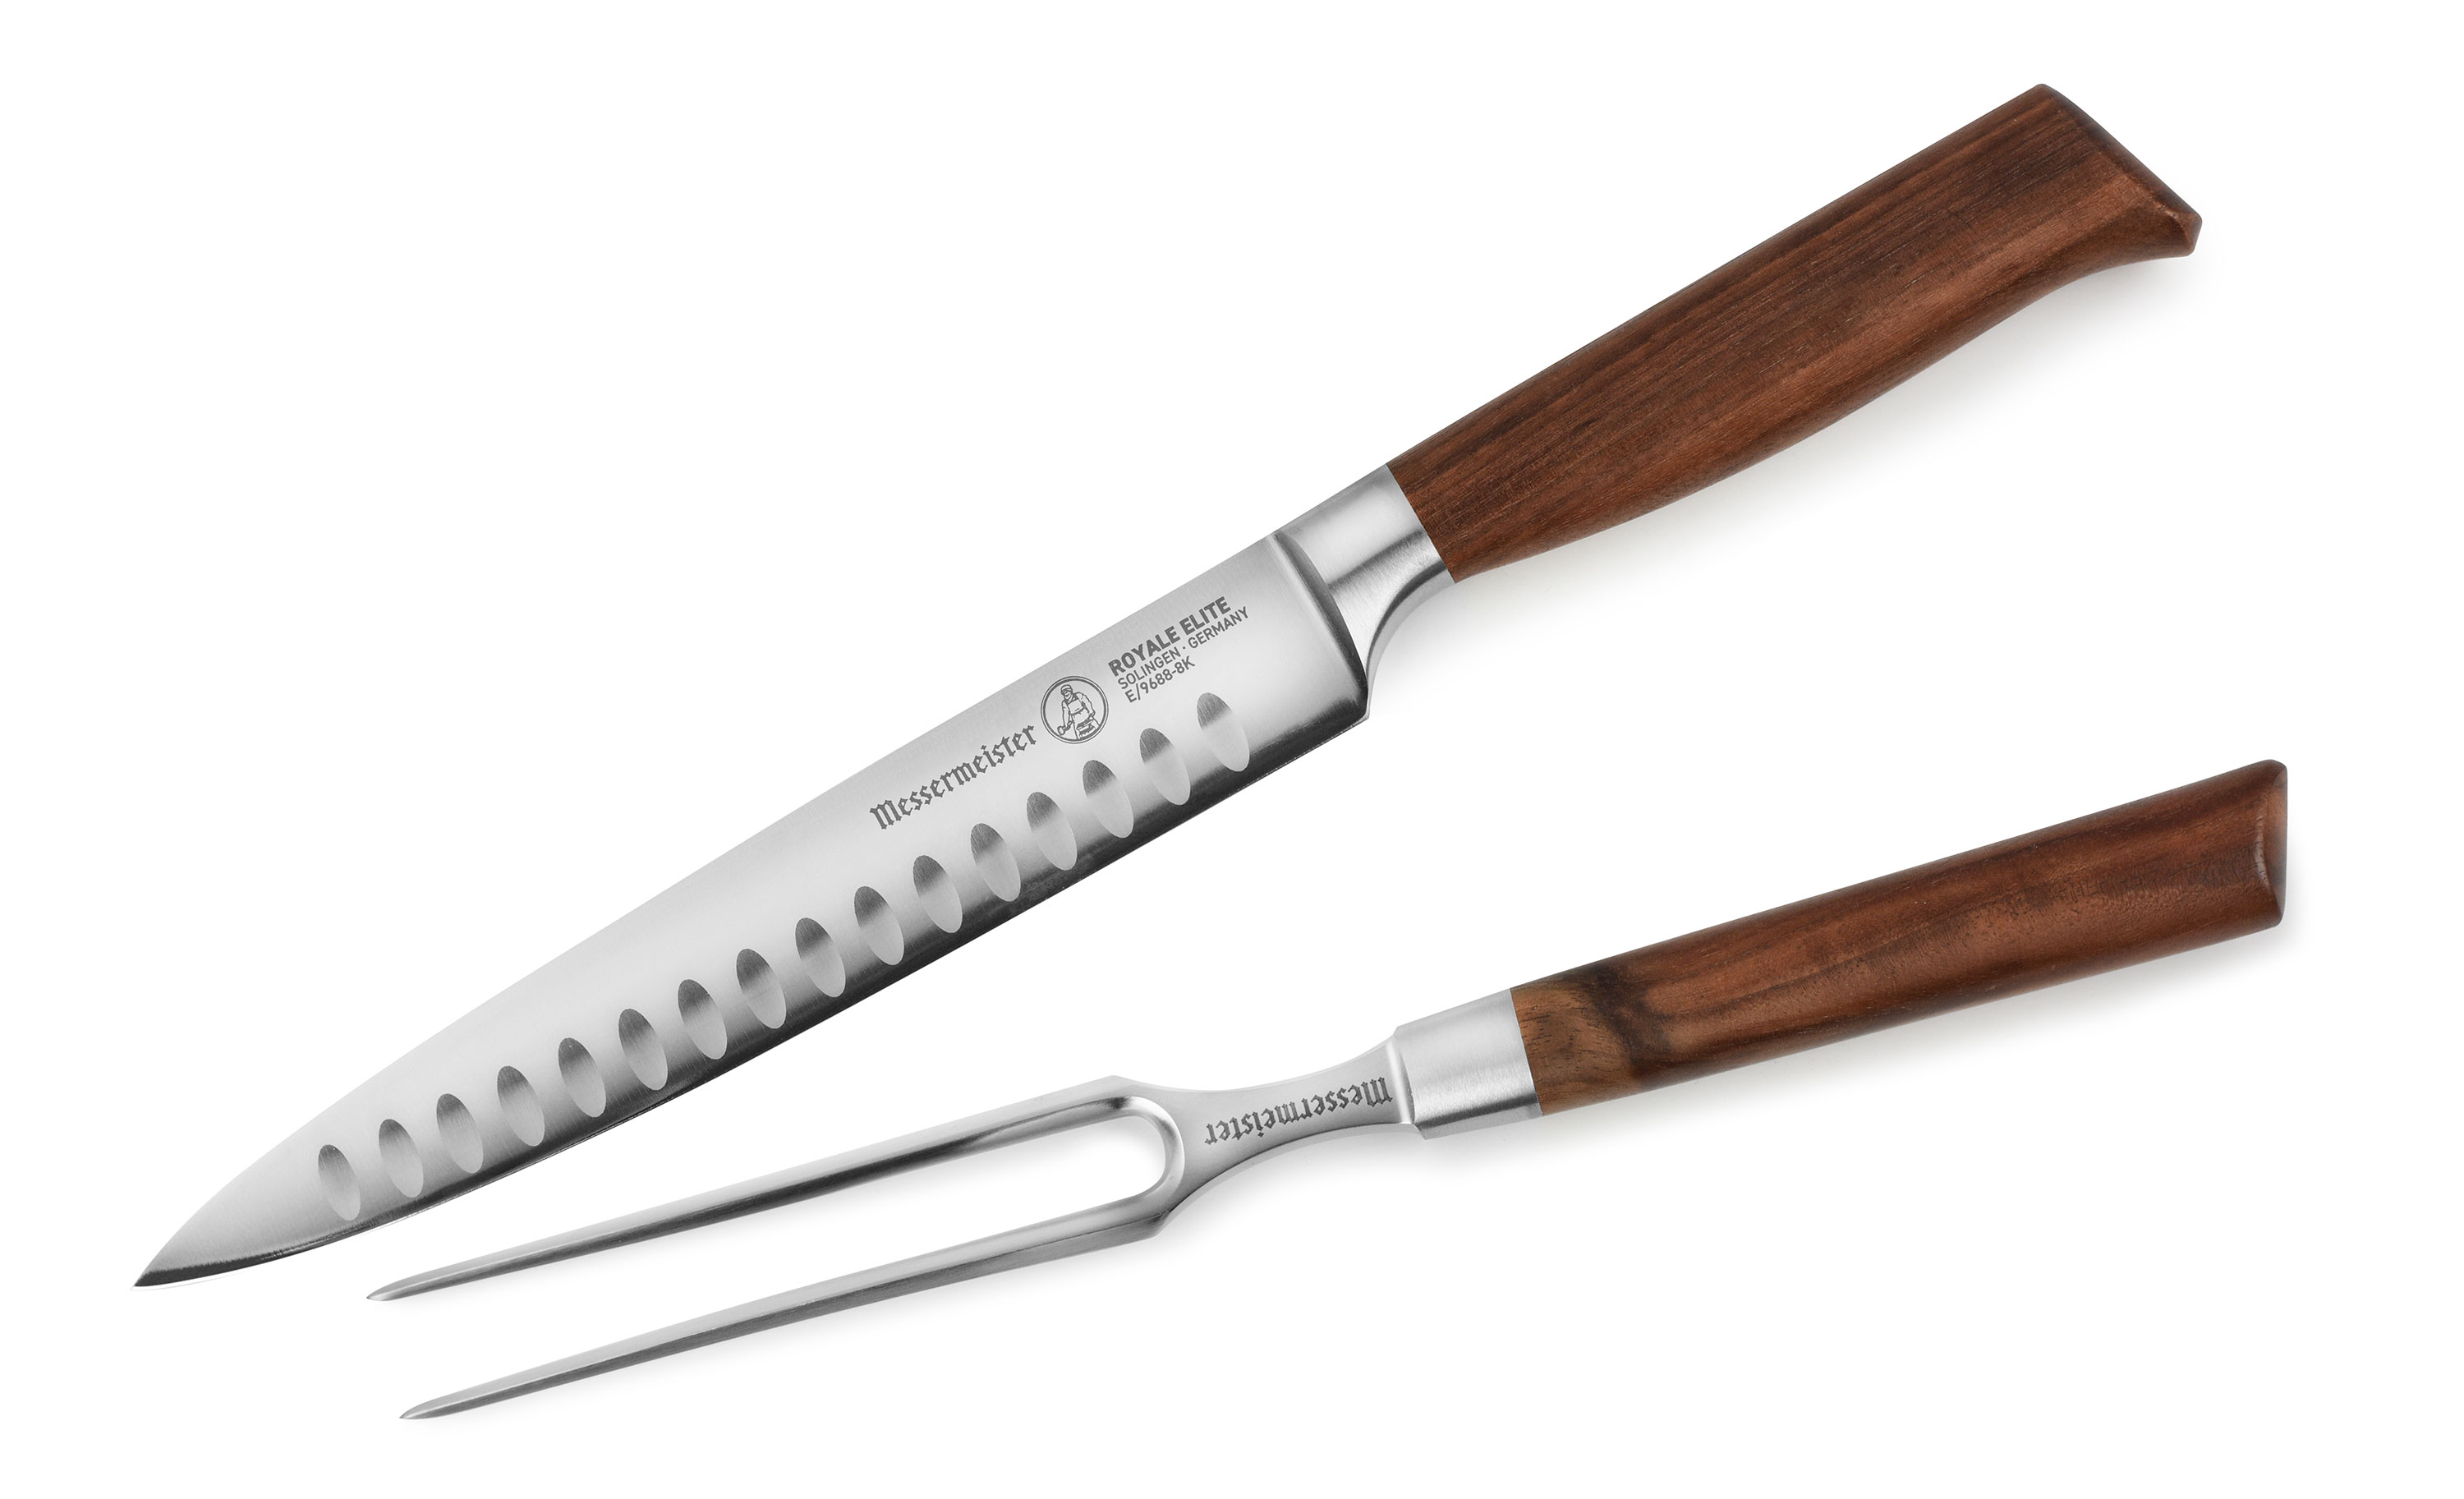 Messermeister Royale Elite Hollow Edge Carving Set 2